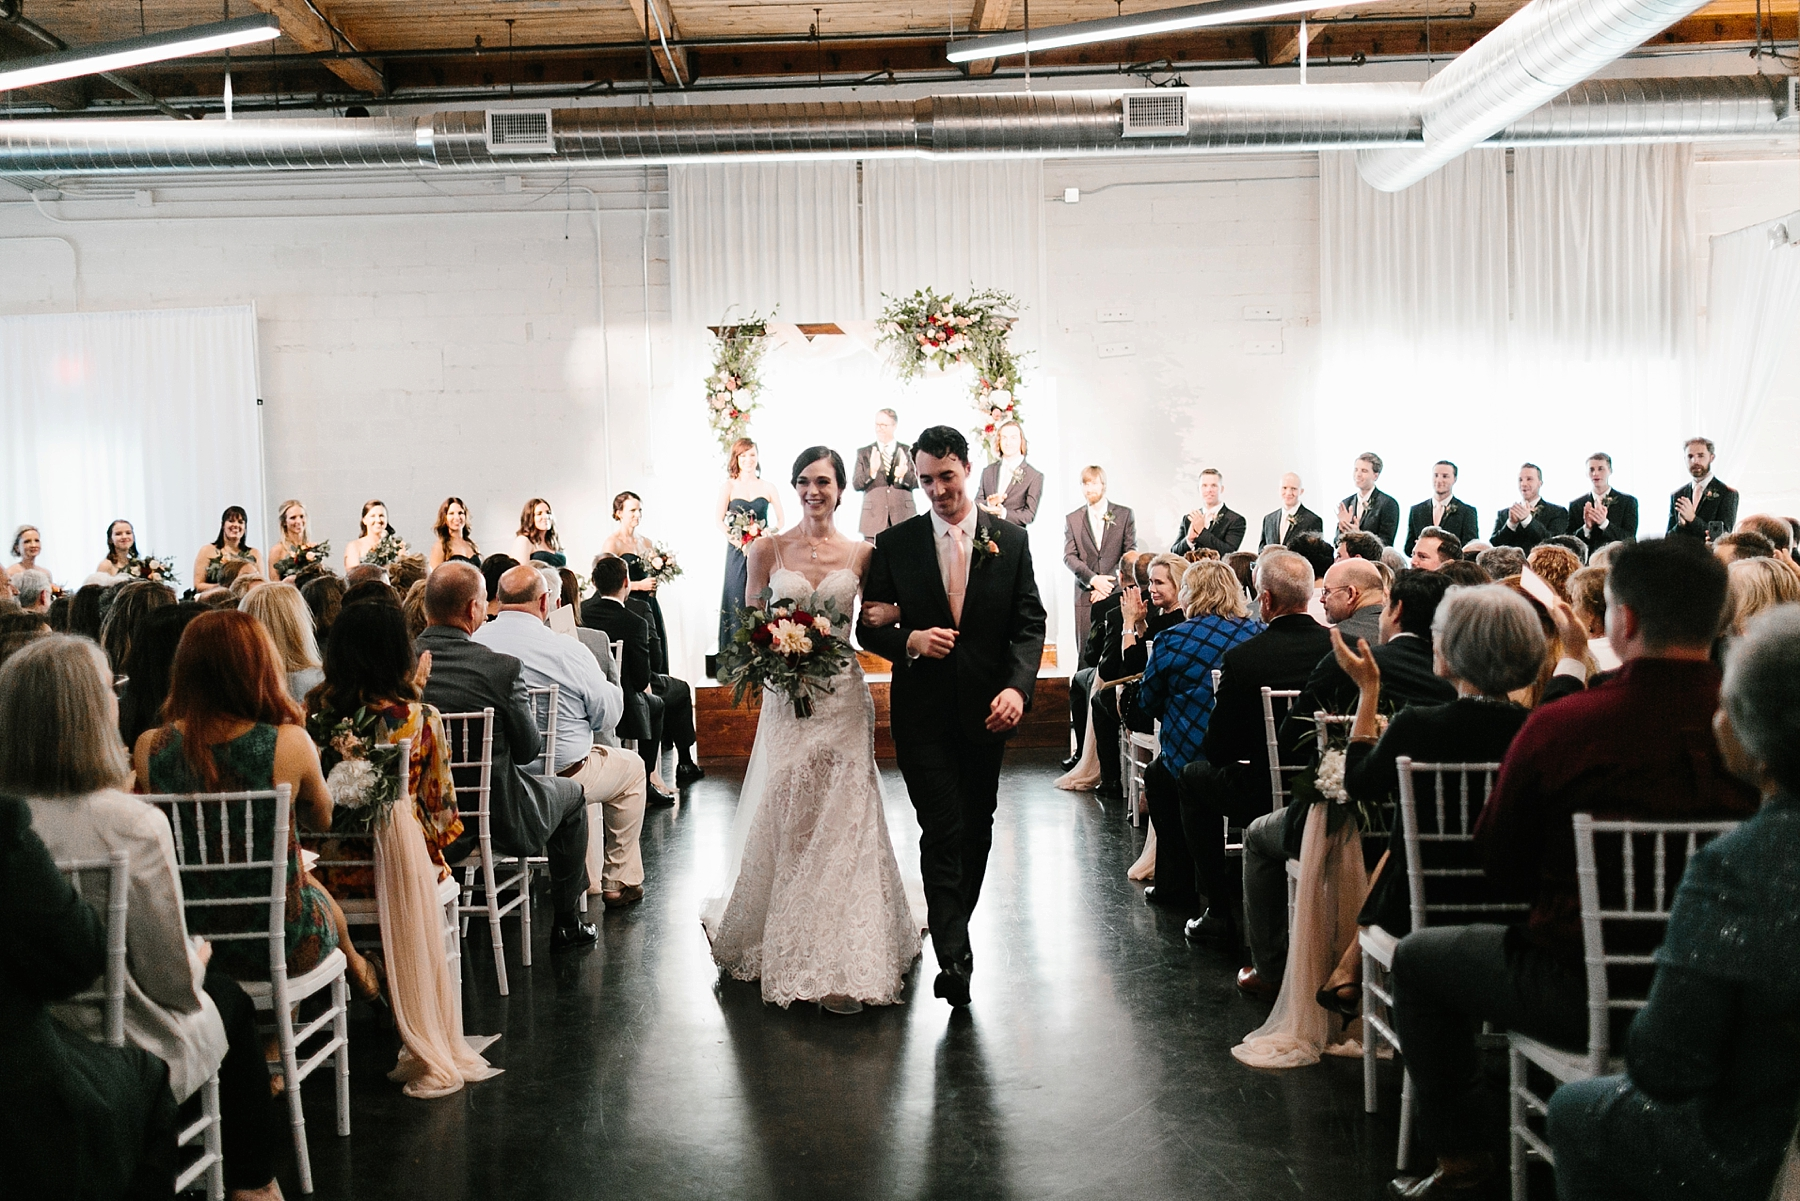 Emily + Caleb _ an elegant, intentional, industrial style wedding with navy + gold accents at 6500 in Dallas, TX by North Texas Wedding Photographer Rachel Meagan Photography _ 100